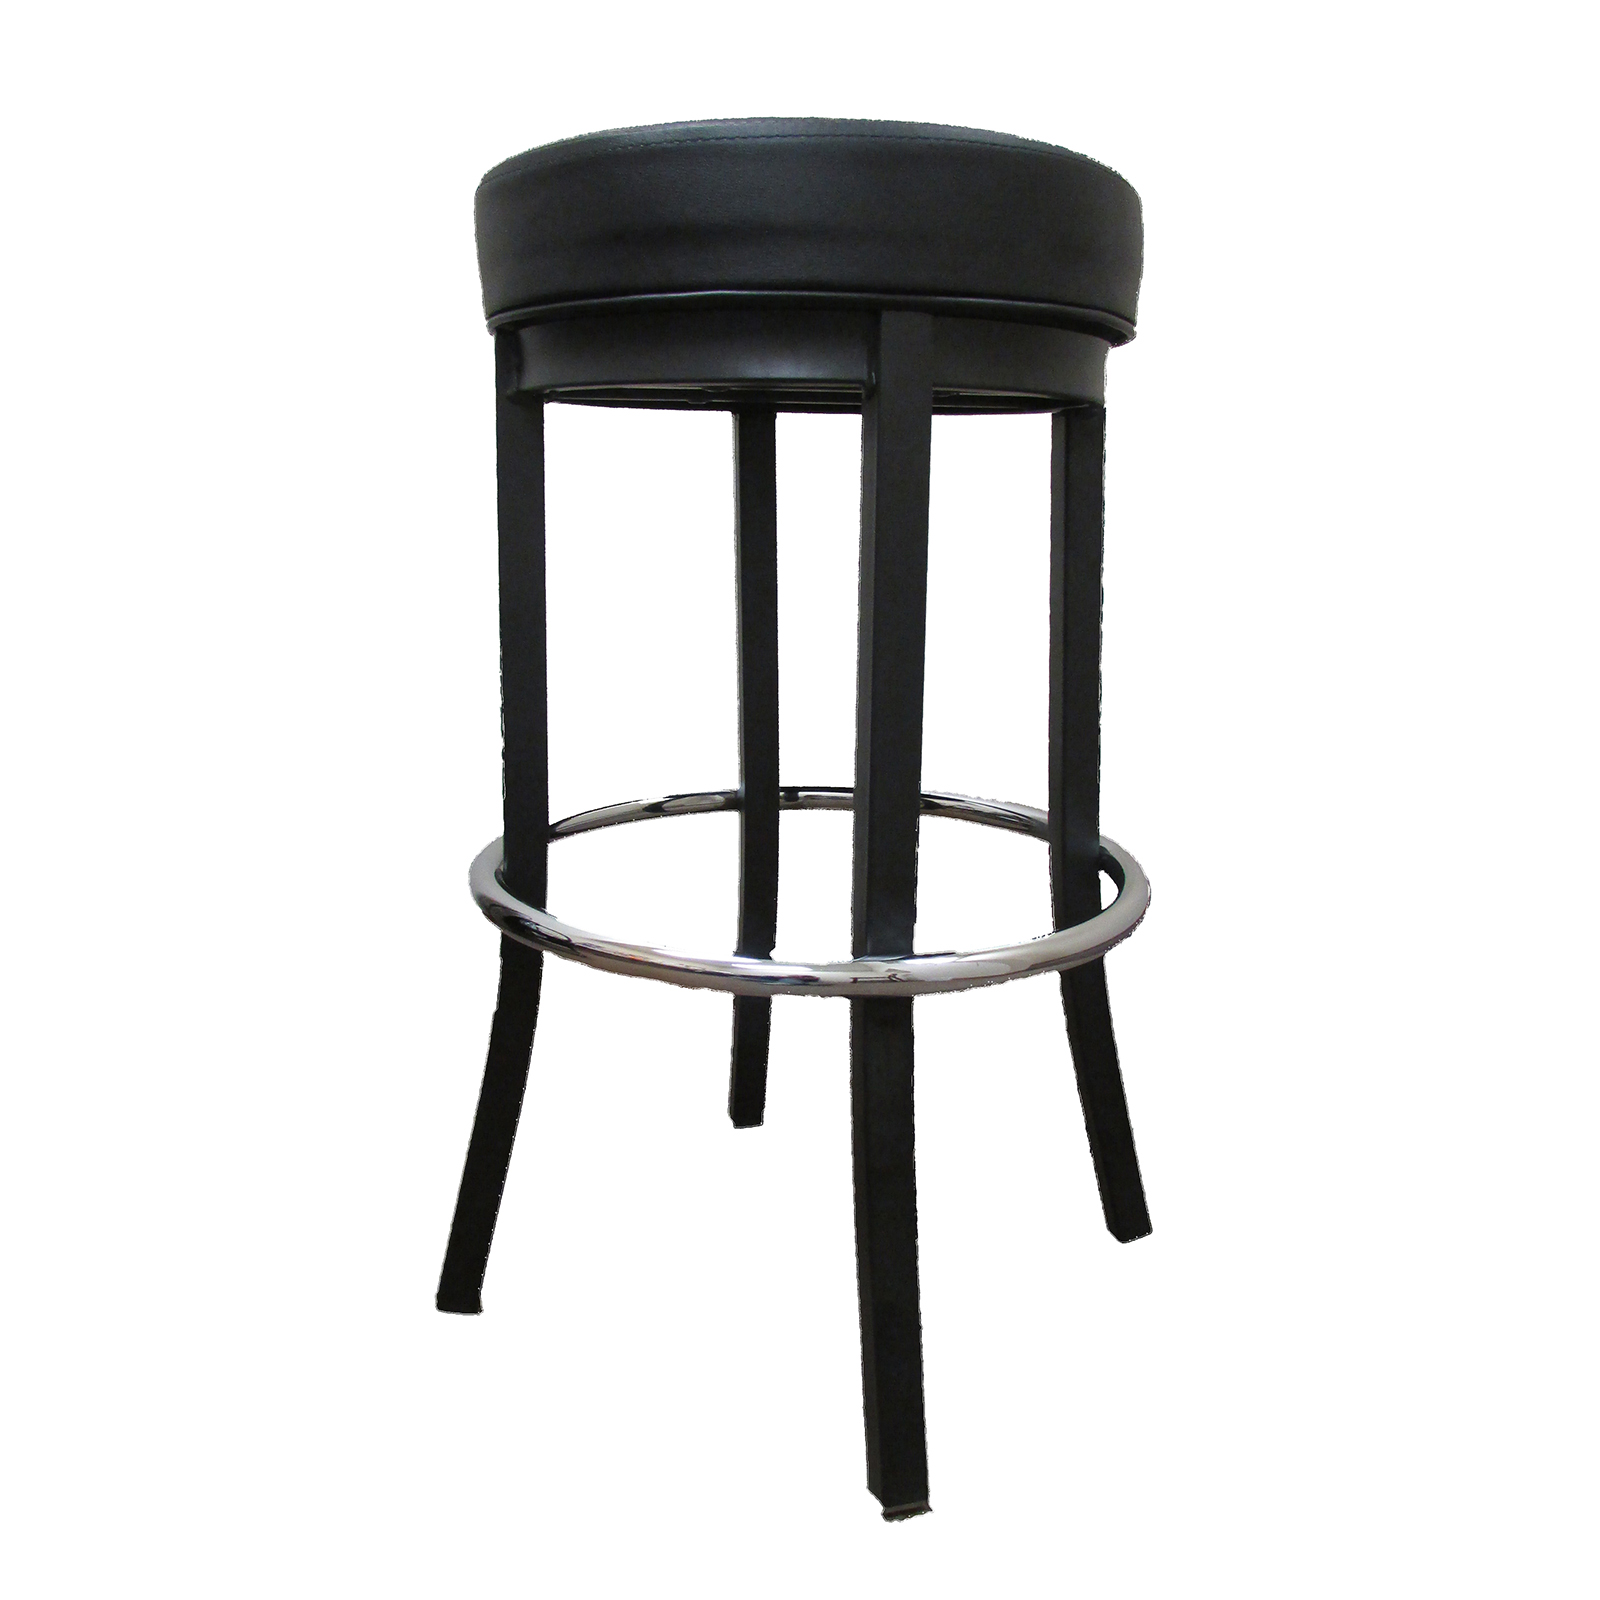 Oak Street BB-288 bar stool, indoor